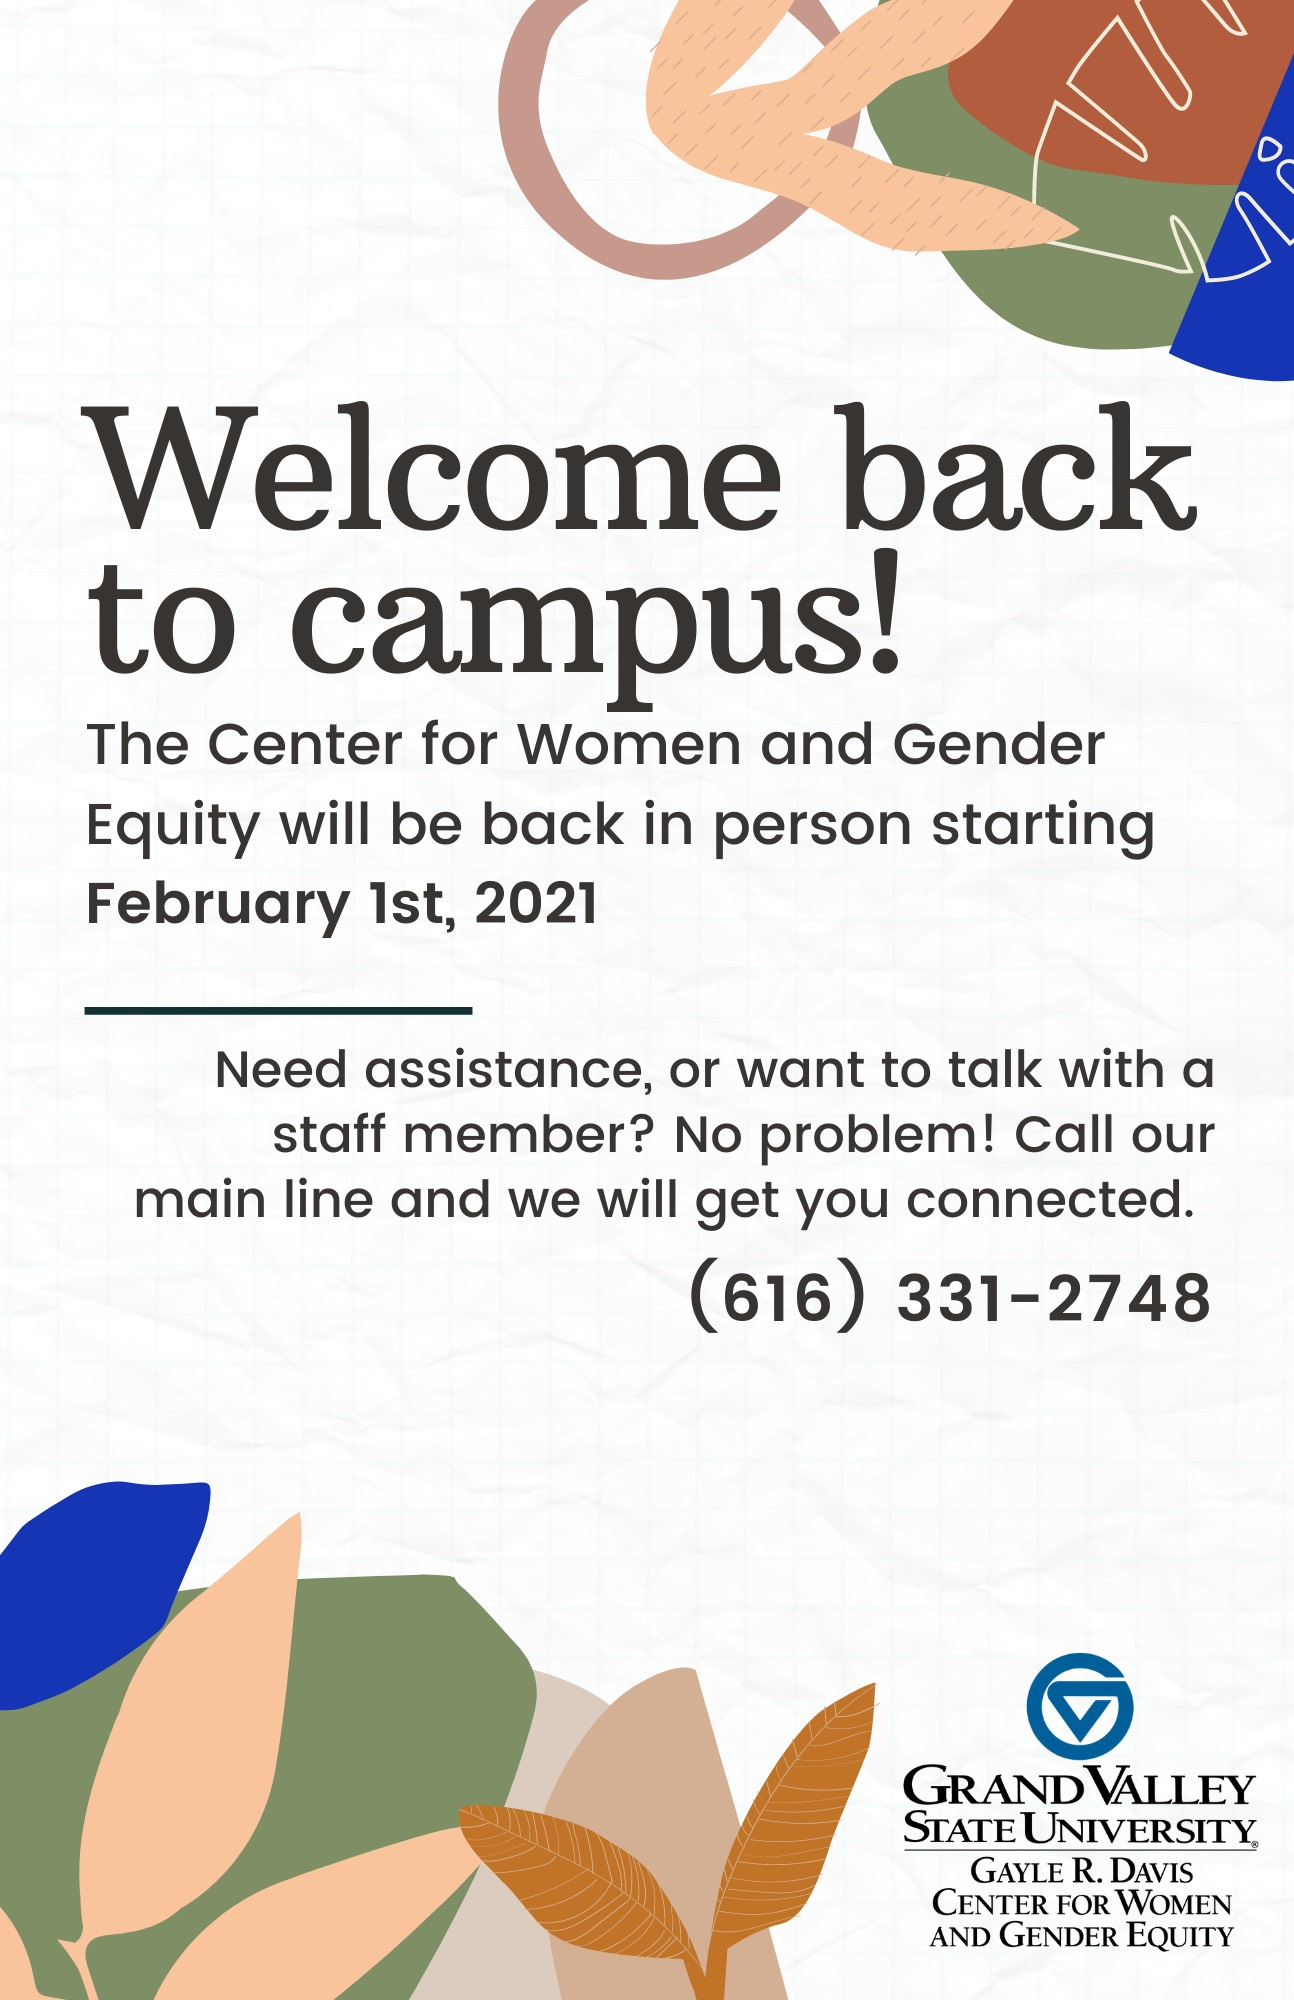 The Center for Women and Gender Equity will be back in person starting February 1st, 2021. Need assistance, or want to talk with a staff member? No problem! Call our main line and we will get you connected. (616) 331-2748